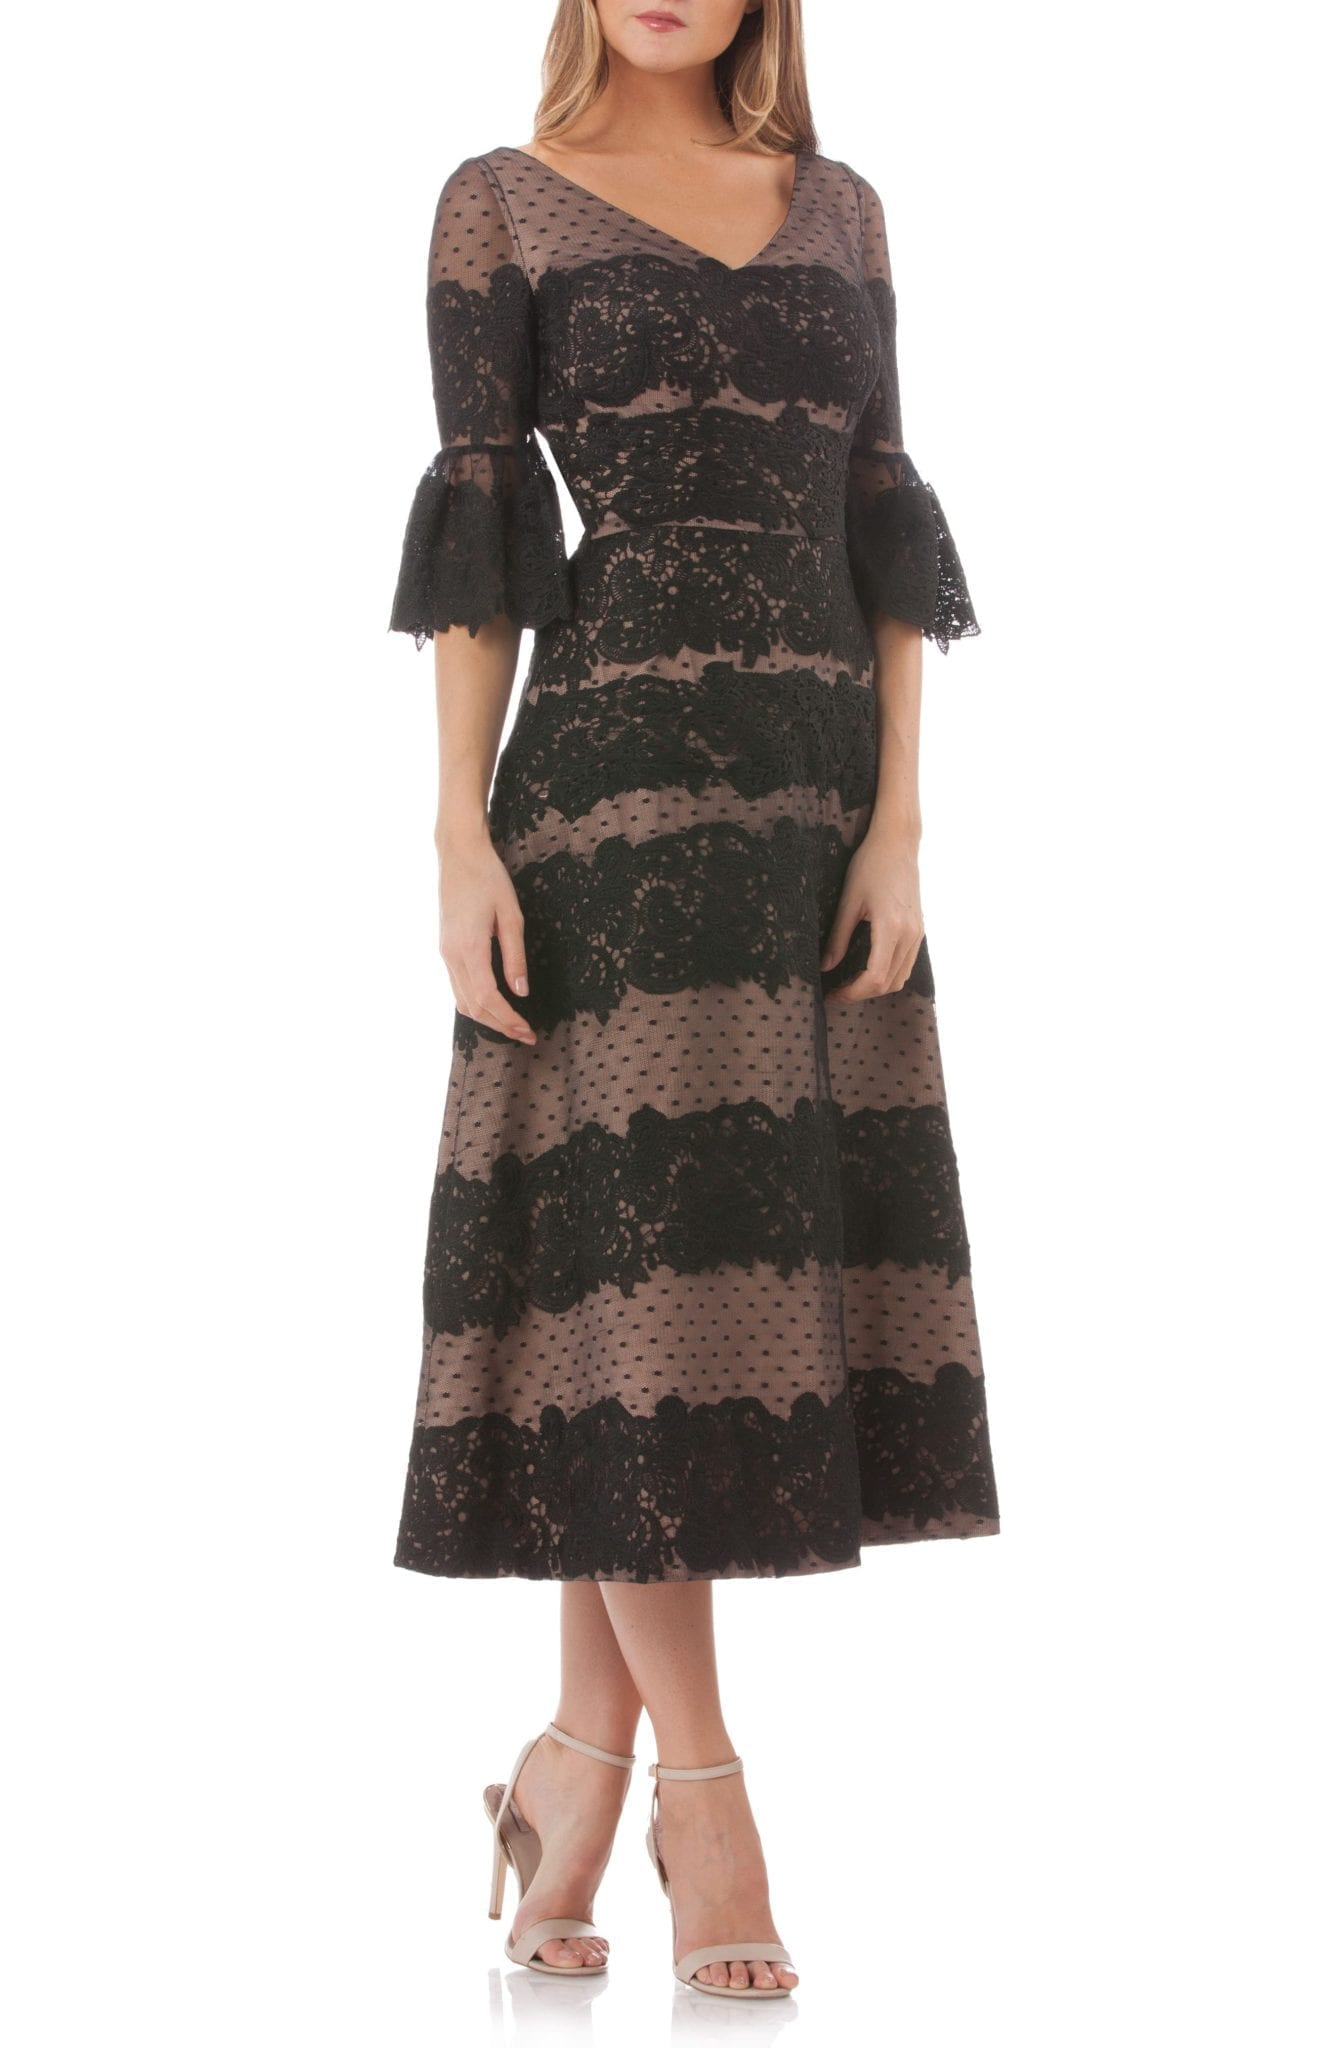 JS COLLECTIONS Embroidered Lace Tea Length Black Dress